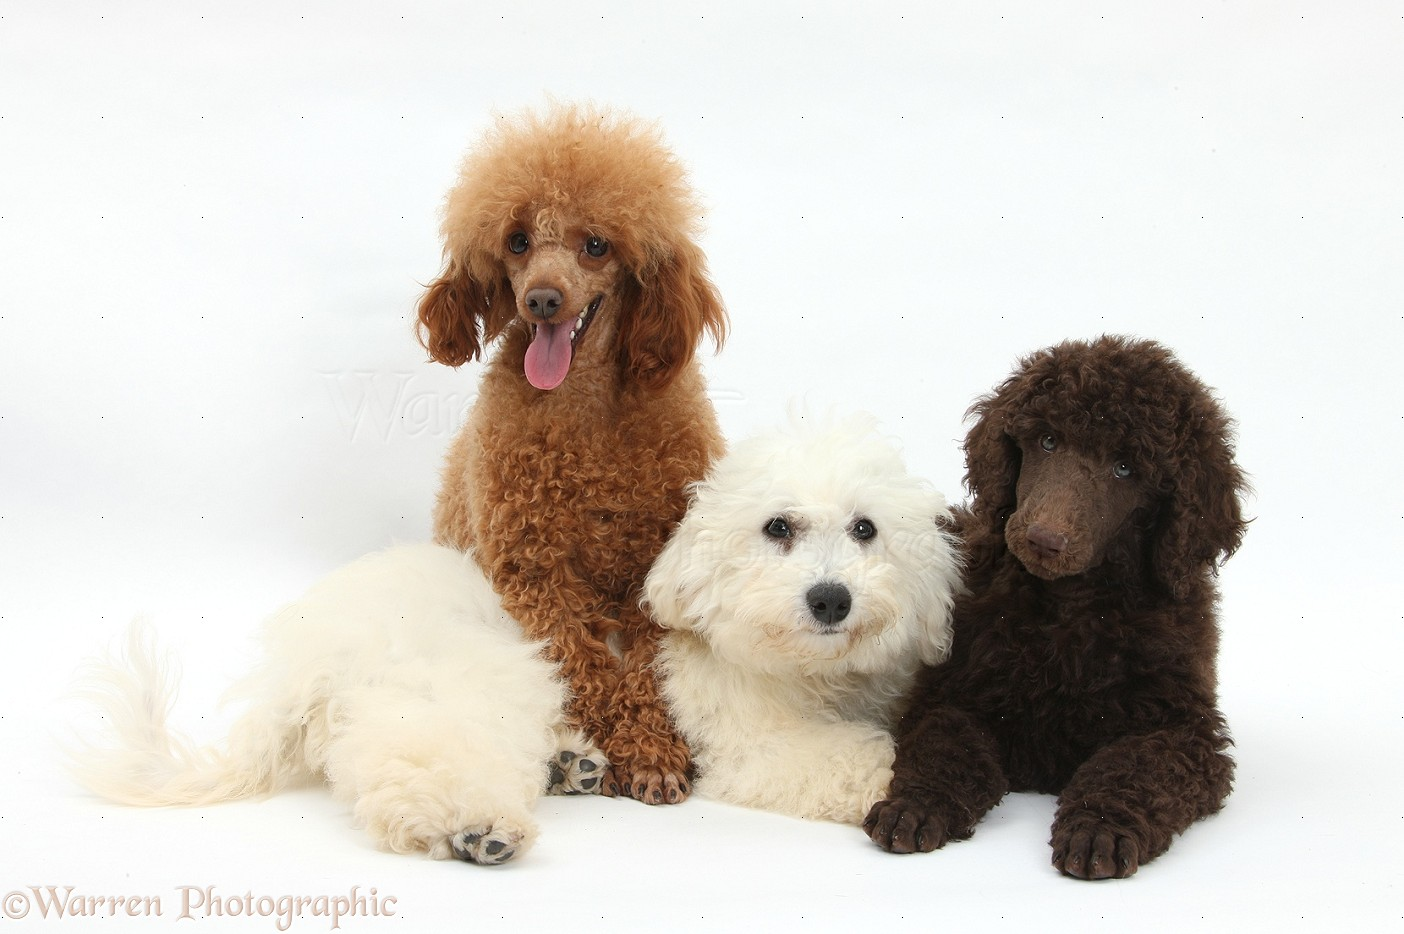 Dogs Bichon Standard Poodle pup and adult toy poodle photo   WP36079 1404x934